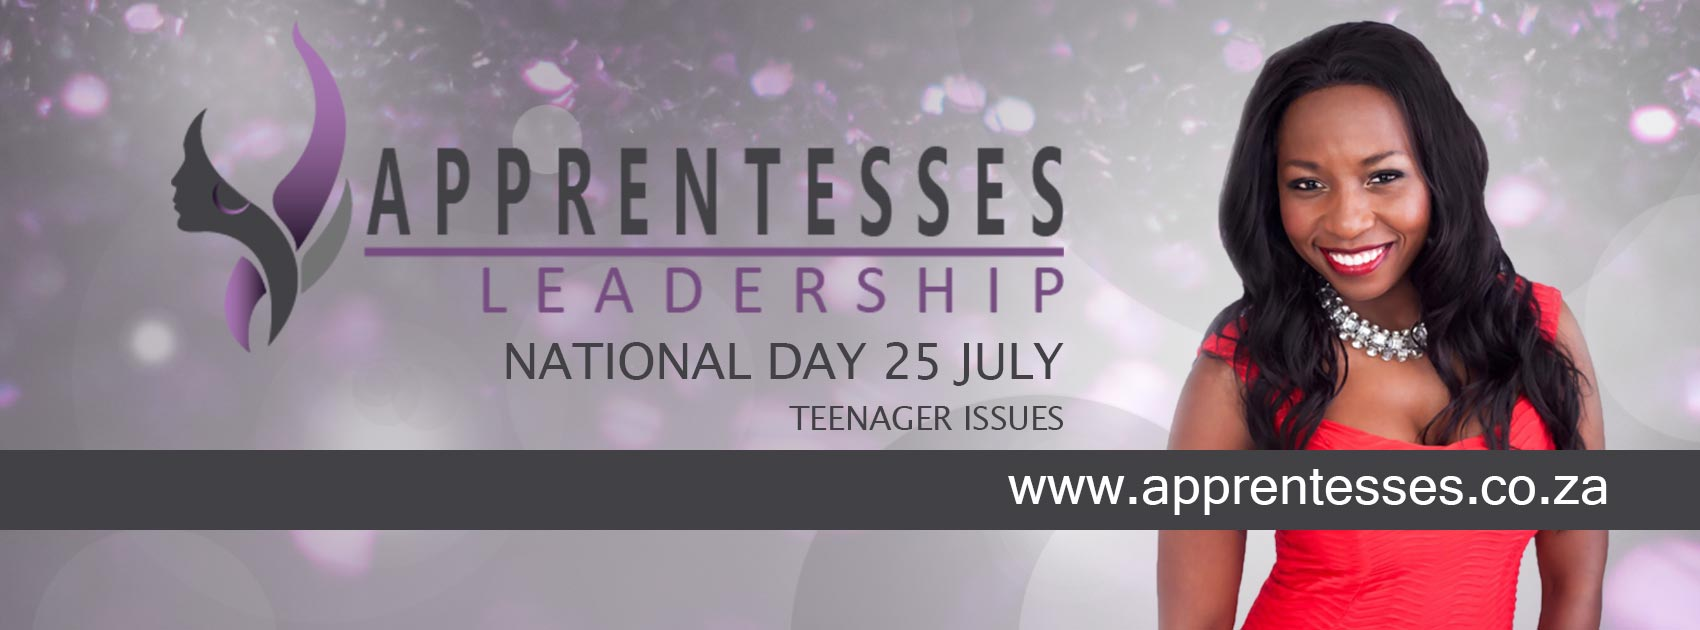 Peri-Peri-Creative-Apprentesses leadership Facebook Banner7